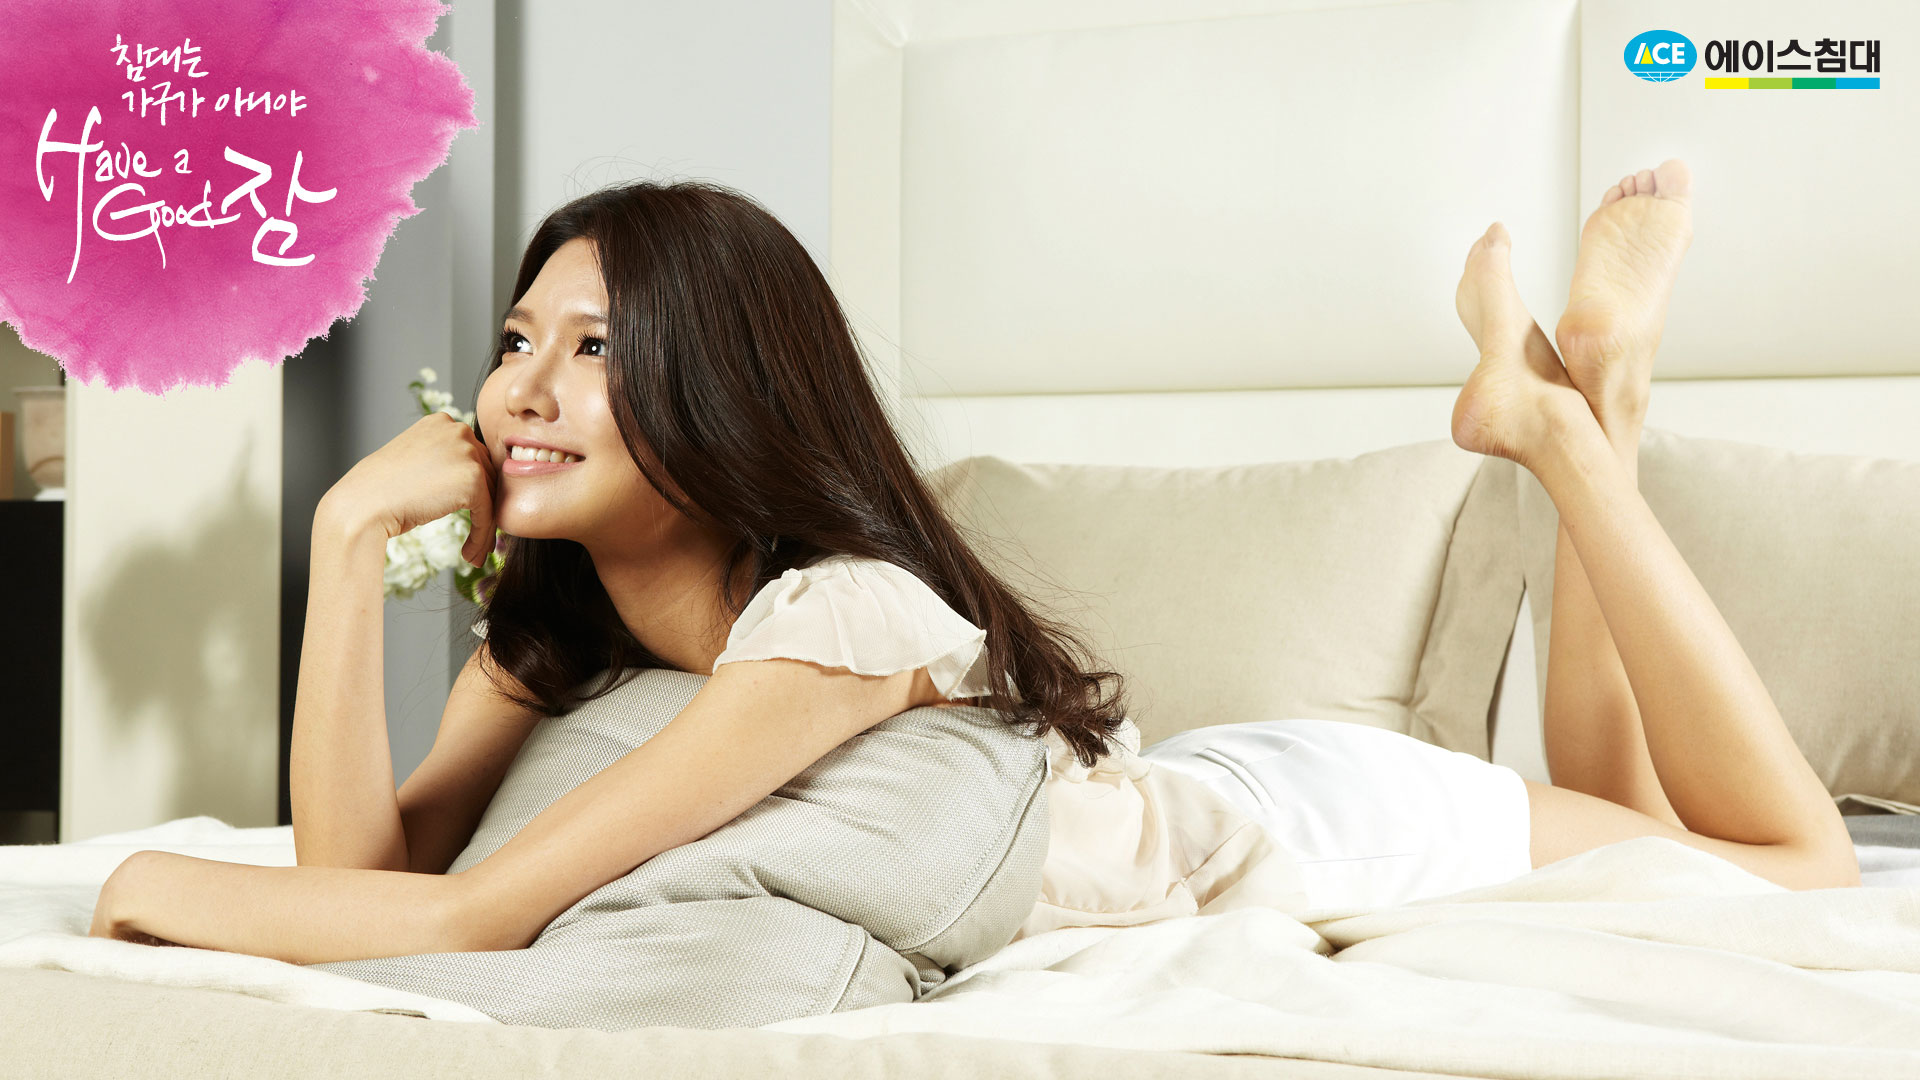 Girls' Generation Ace Bed wallpapers